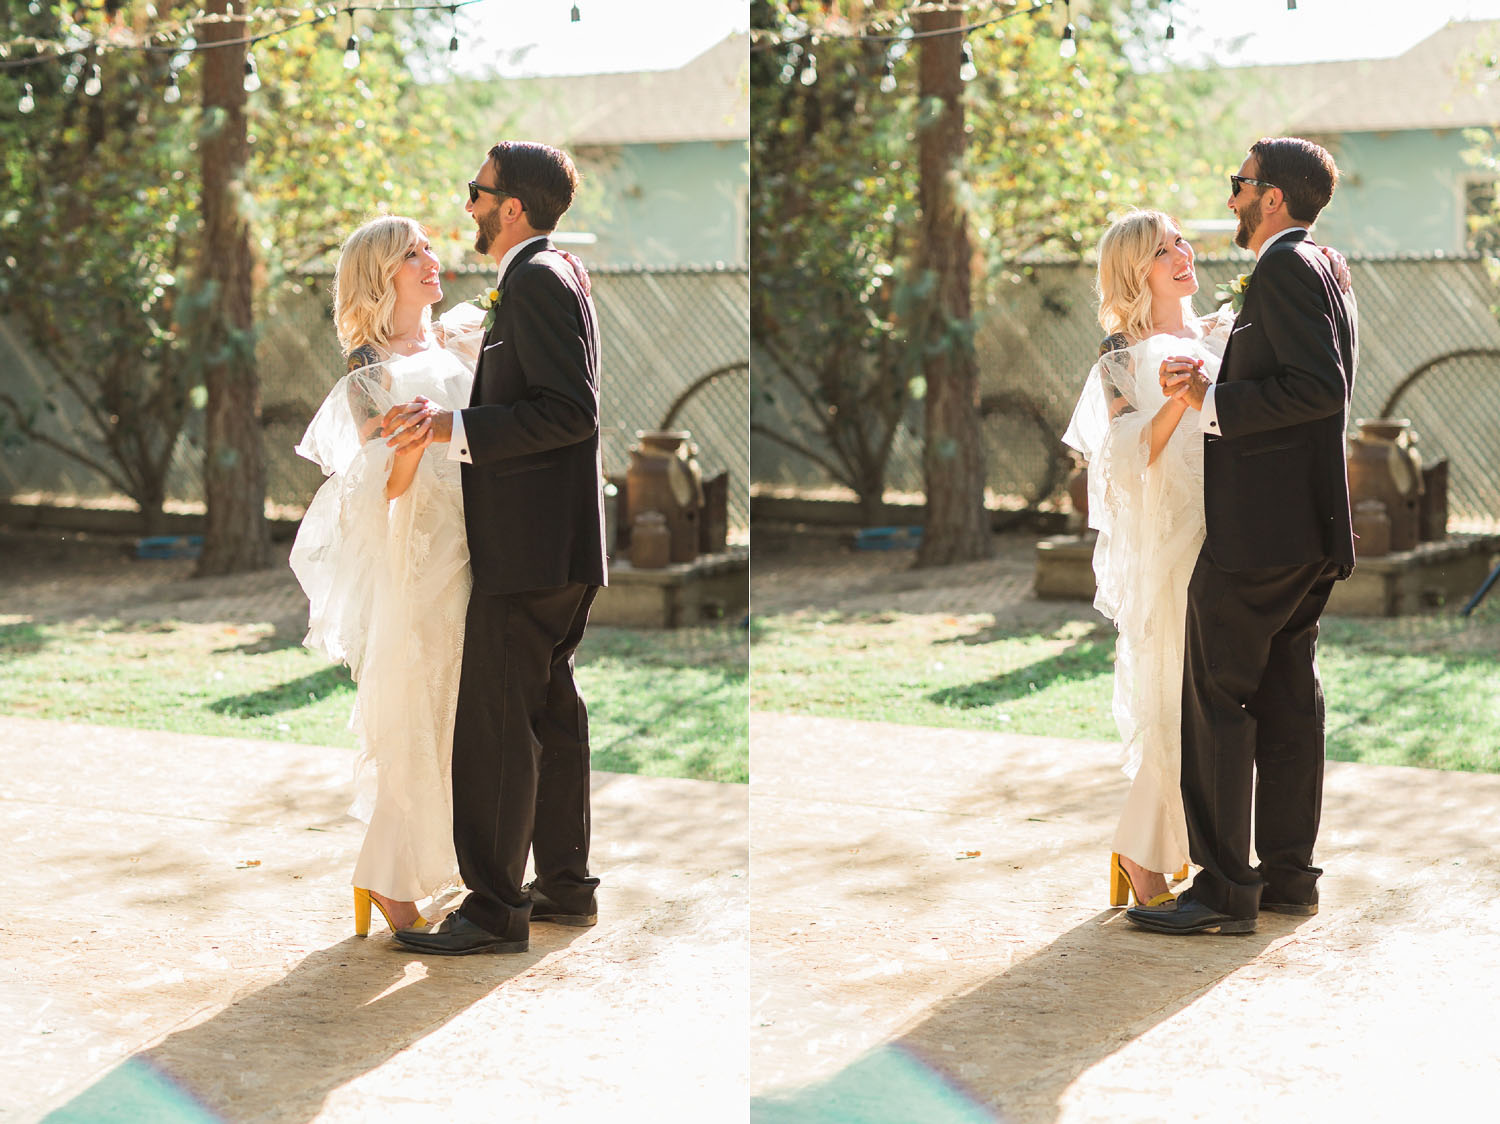 The Photege - Elegant Boho Wedding on Suburu Farm in Bakersfield California- Cassie and Darin Buoni-3048